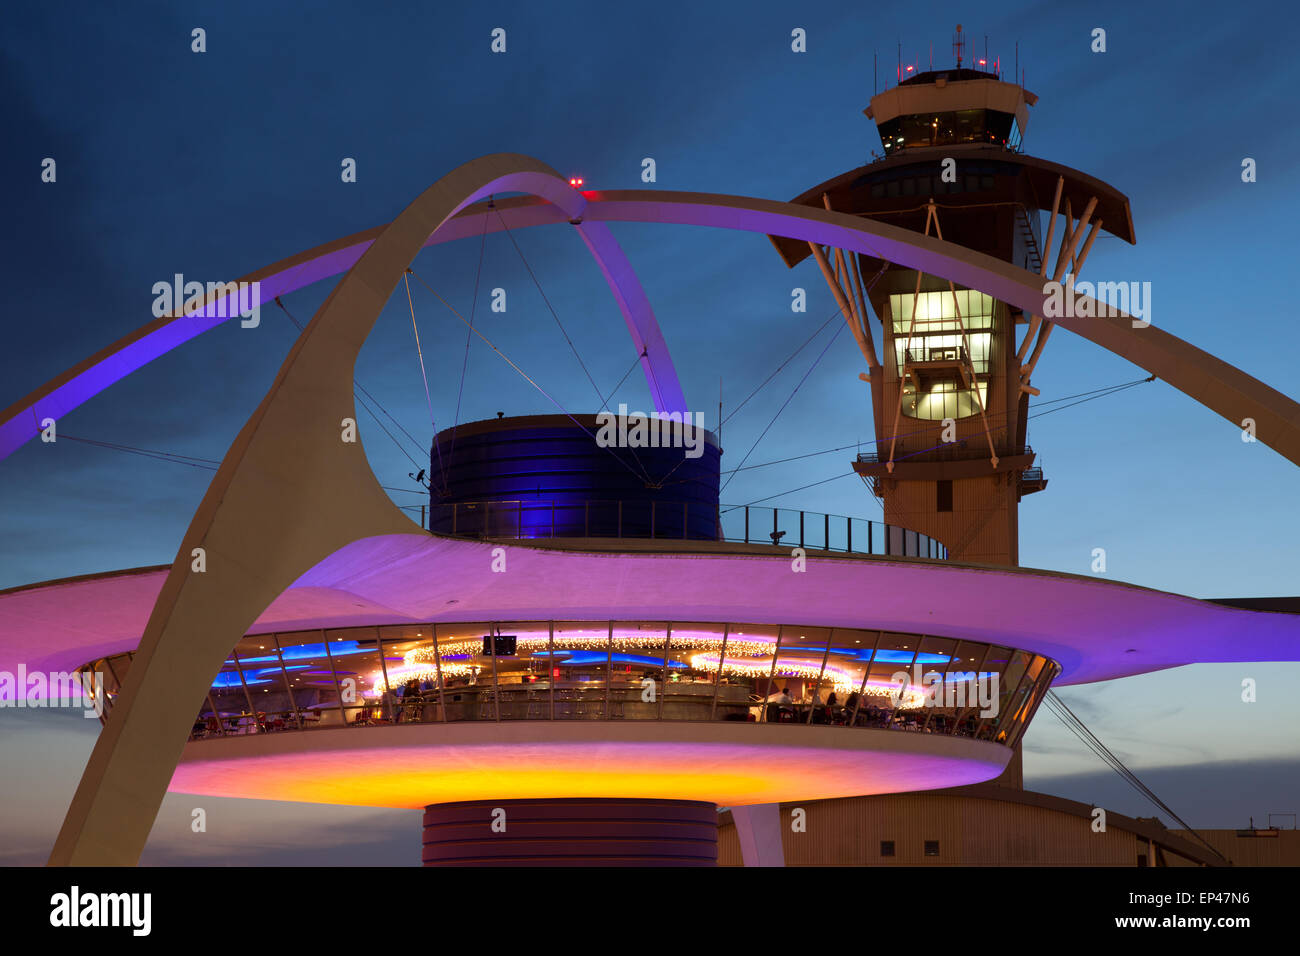 Los Angeles International Airport LAX - Stock Image